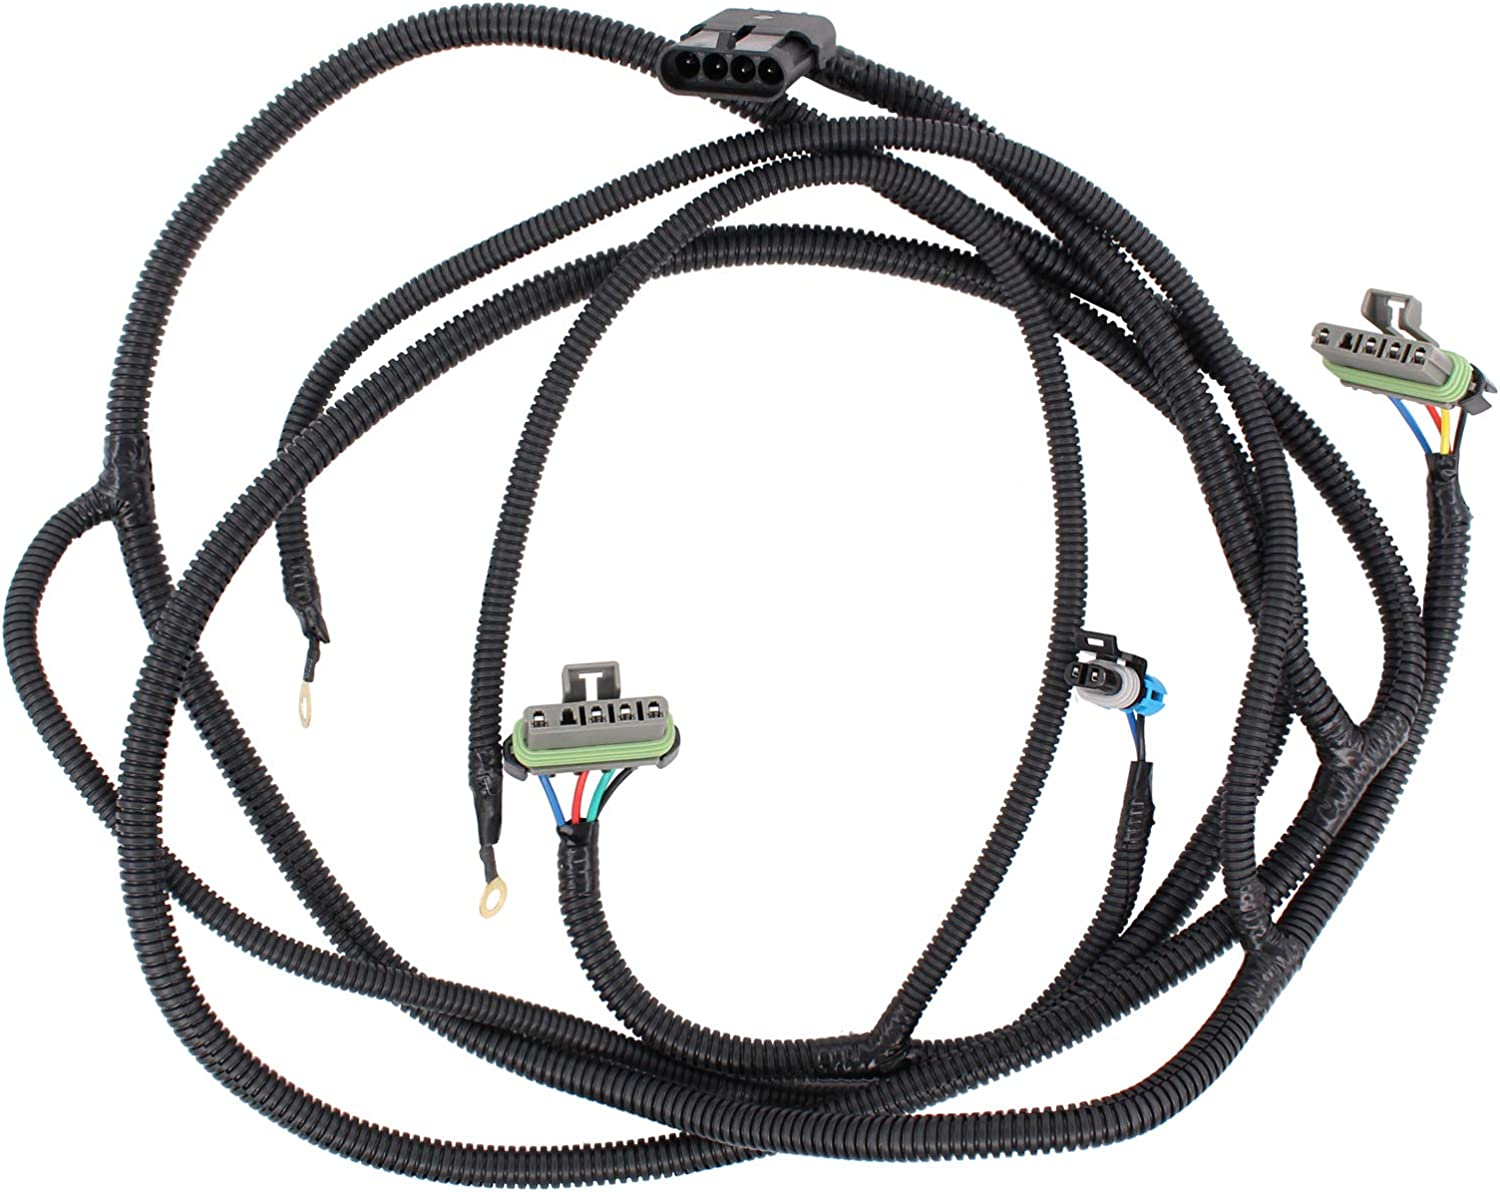 XtremeAmazing Tail Light Wiring Harness Compatible with Chevy GMC Blazer Suburban Tahoe Yukon 88-98